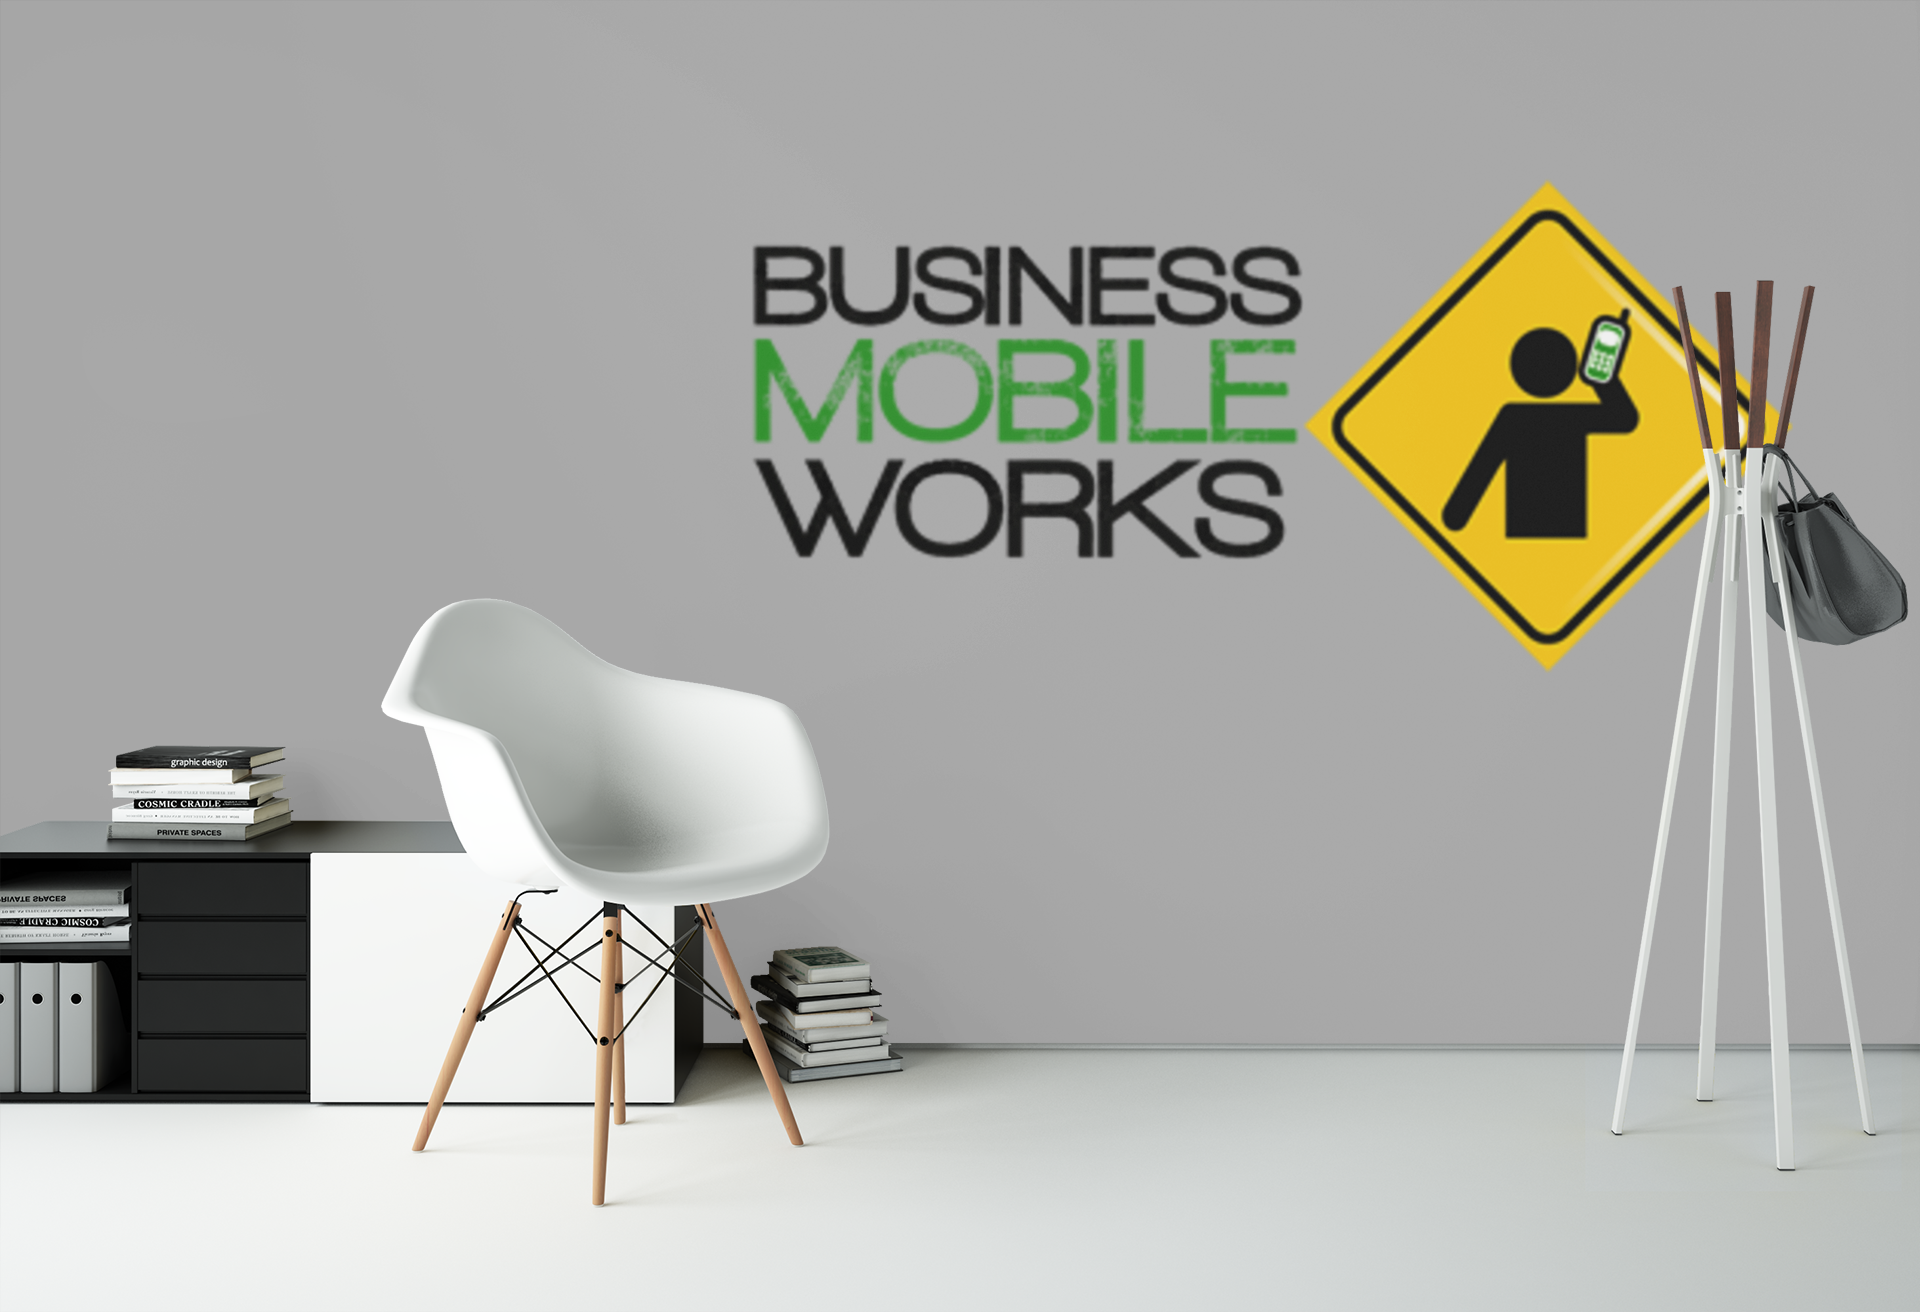 business mobile works